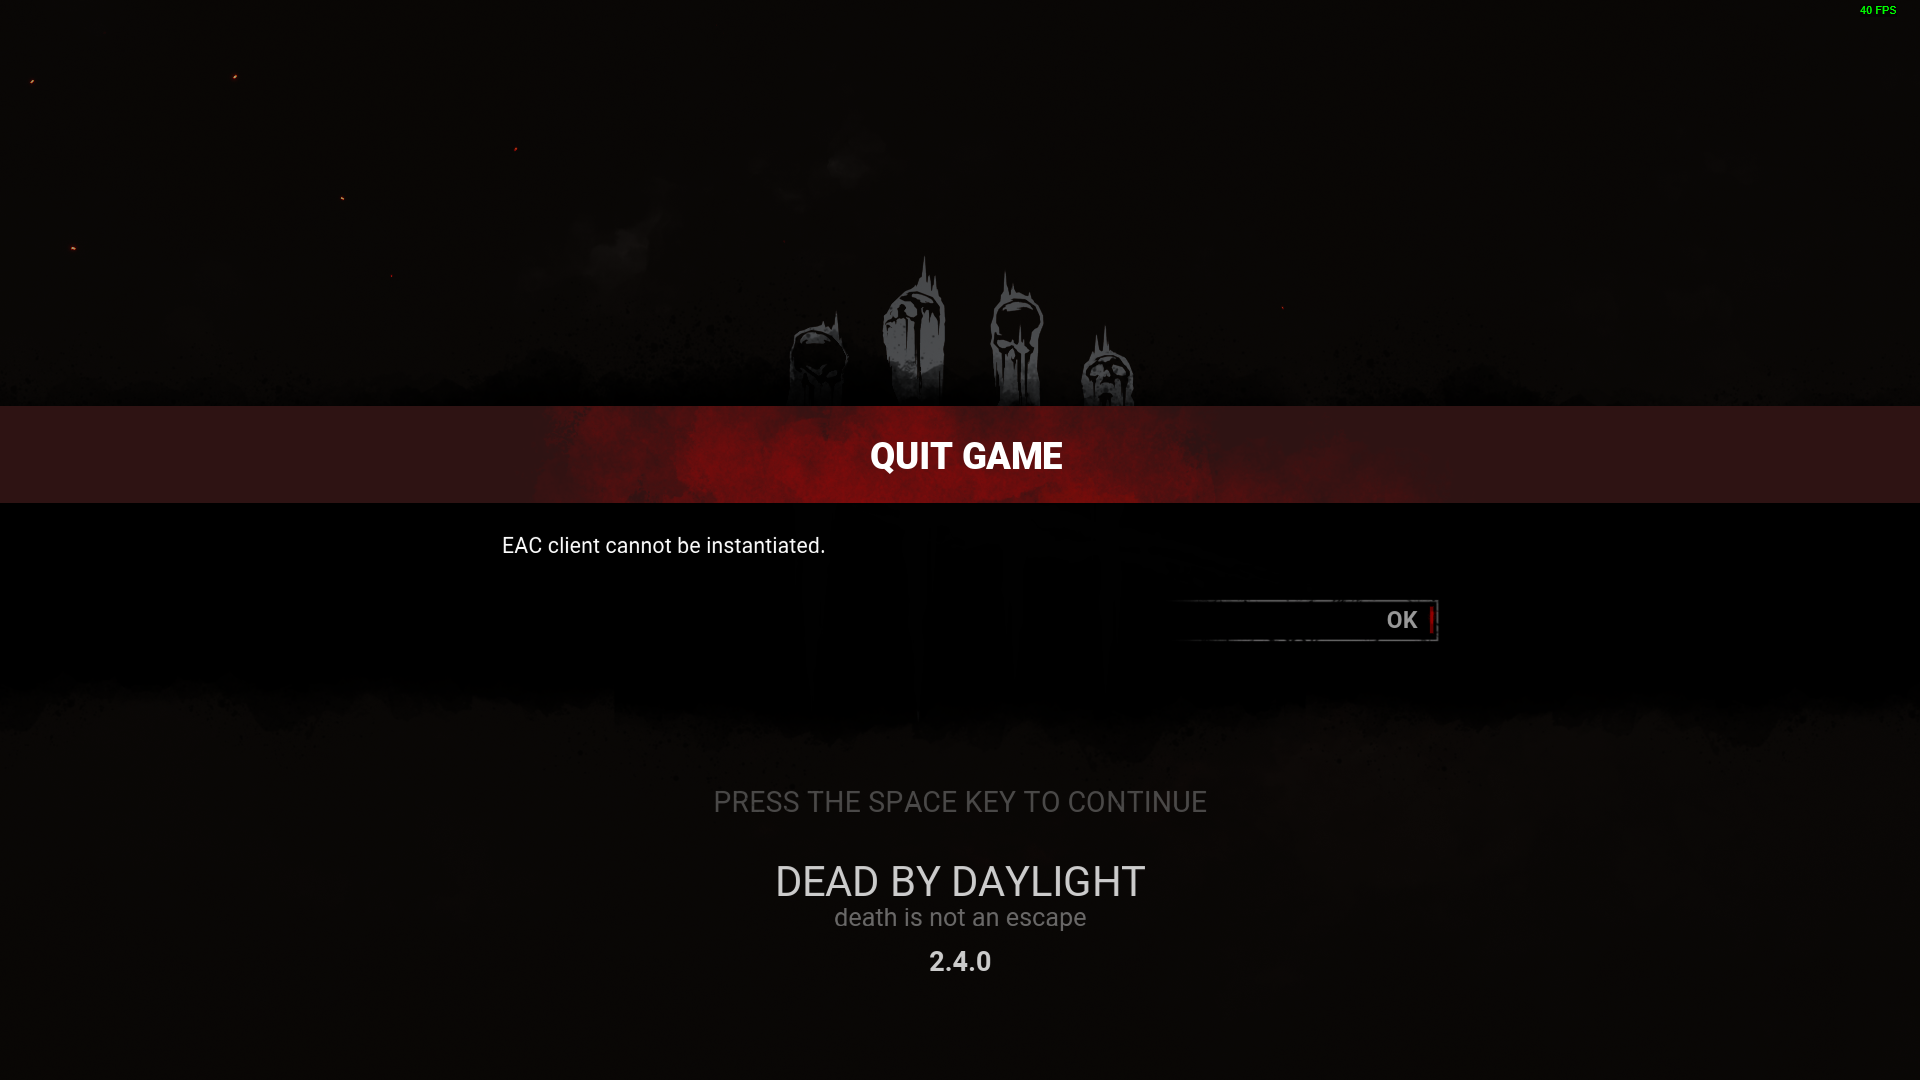 dead by daylight anti cheat